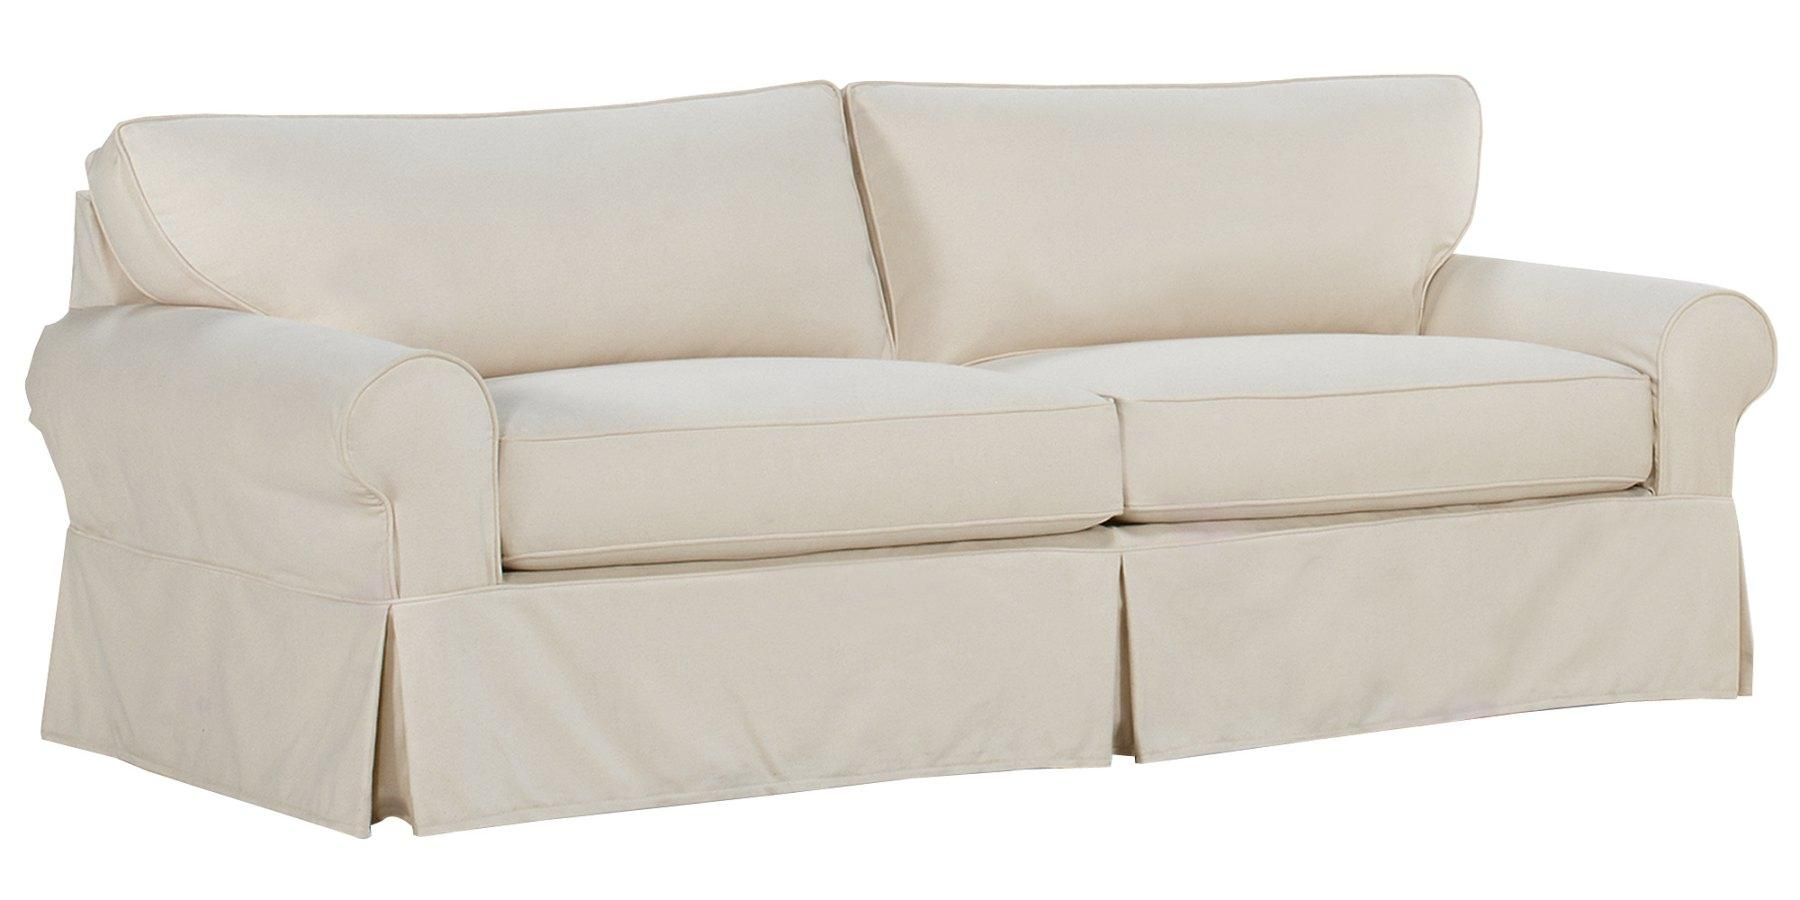 Featured Image of Large Sofa Slipcovers